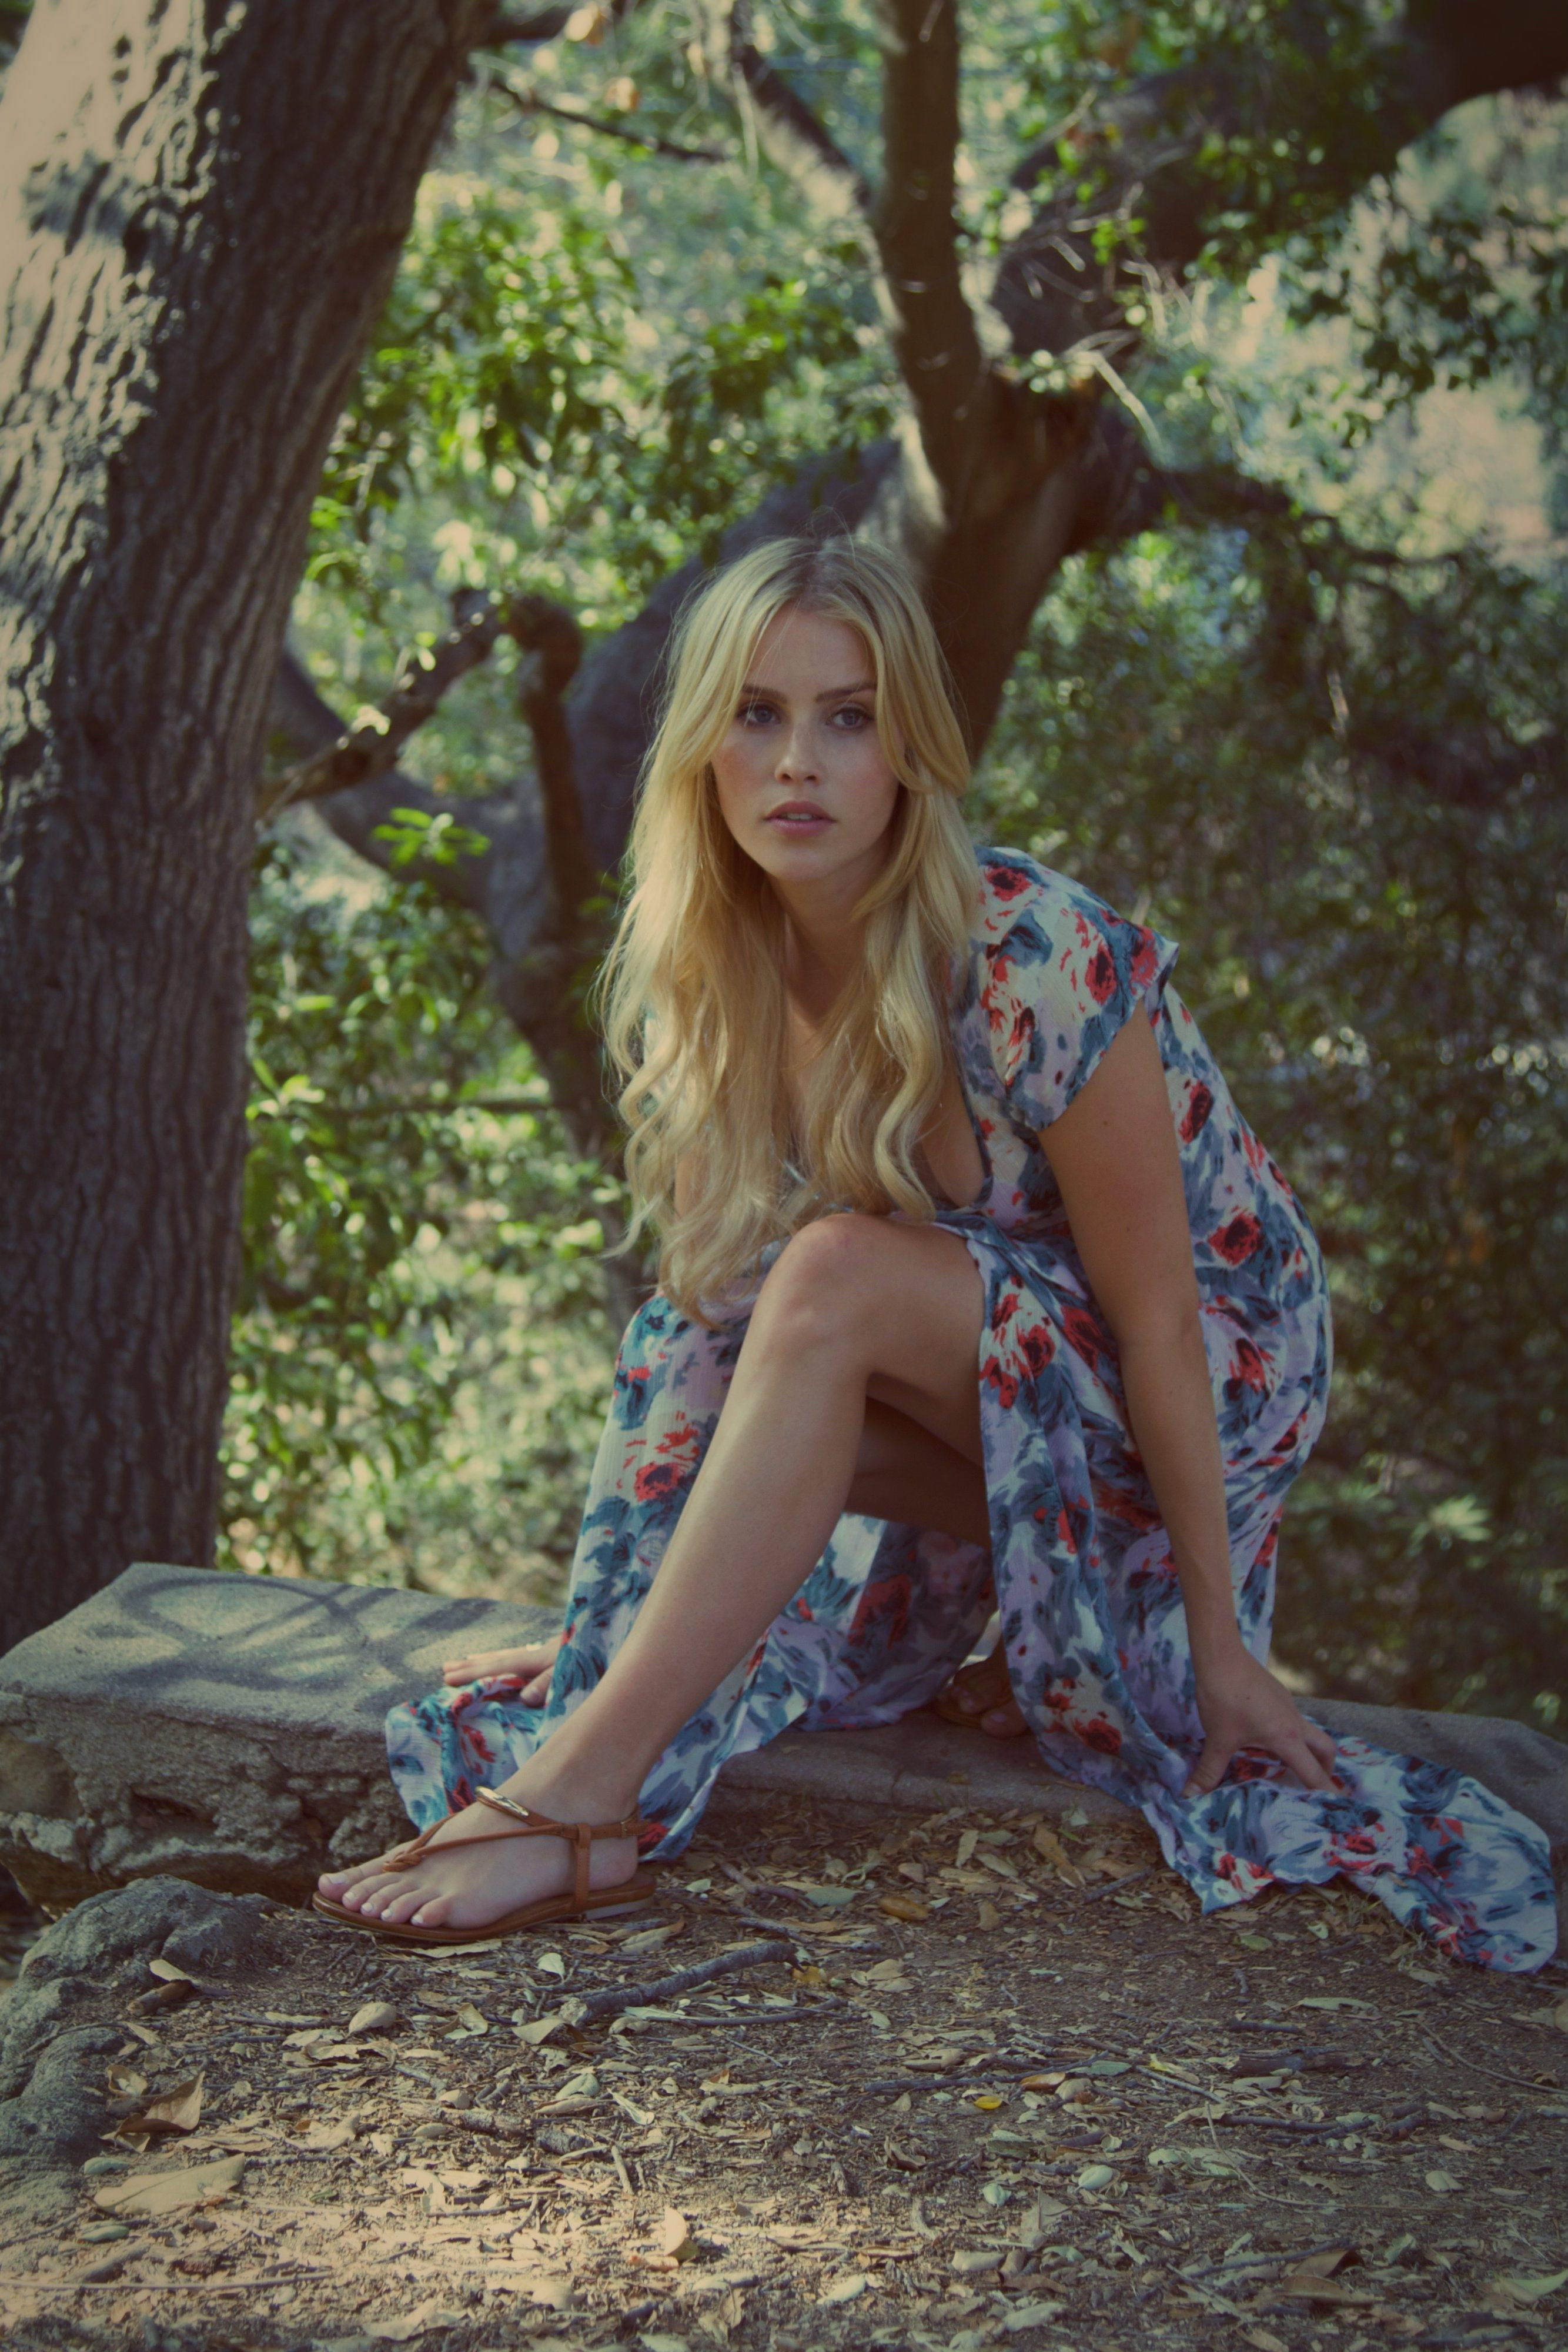 Nude pics of claire holt